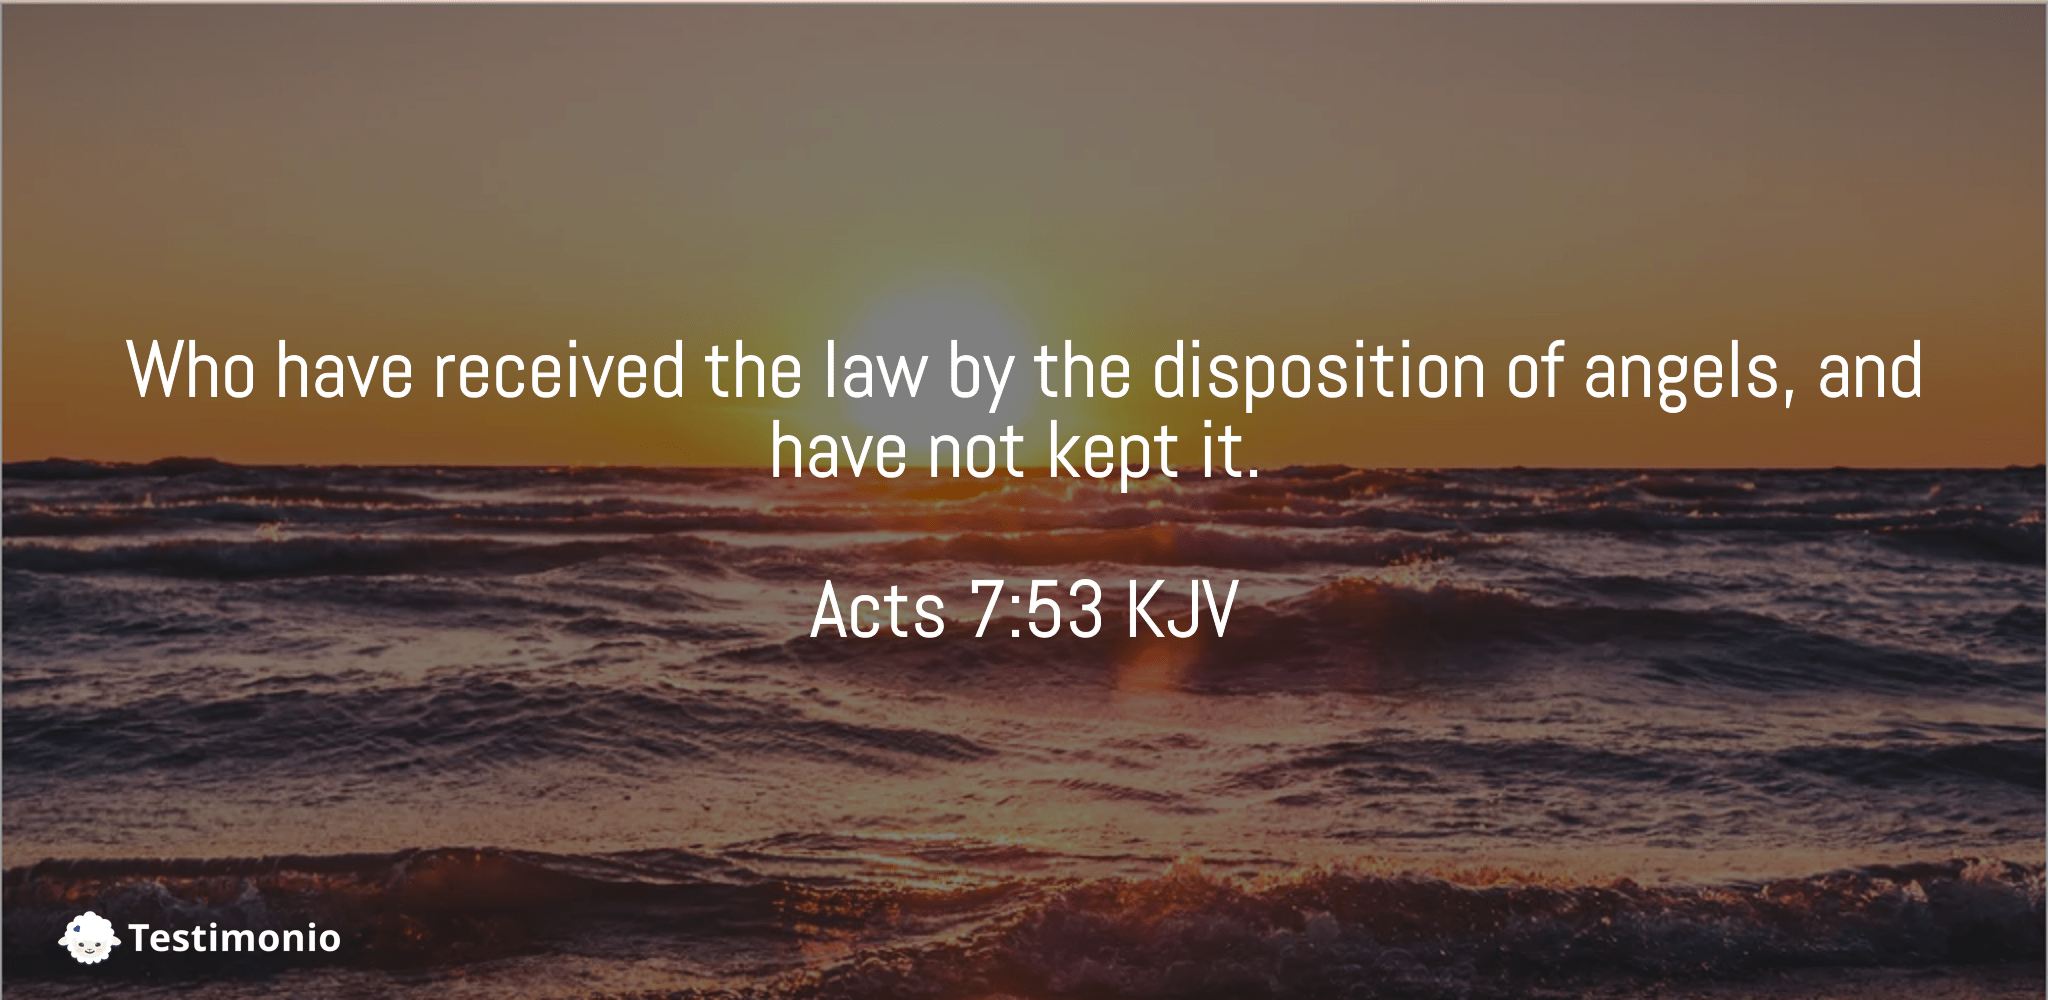 Acts 7:53